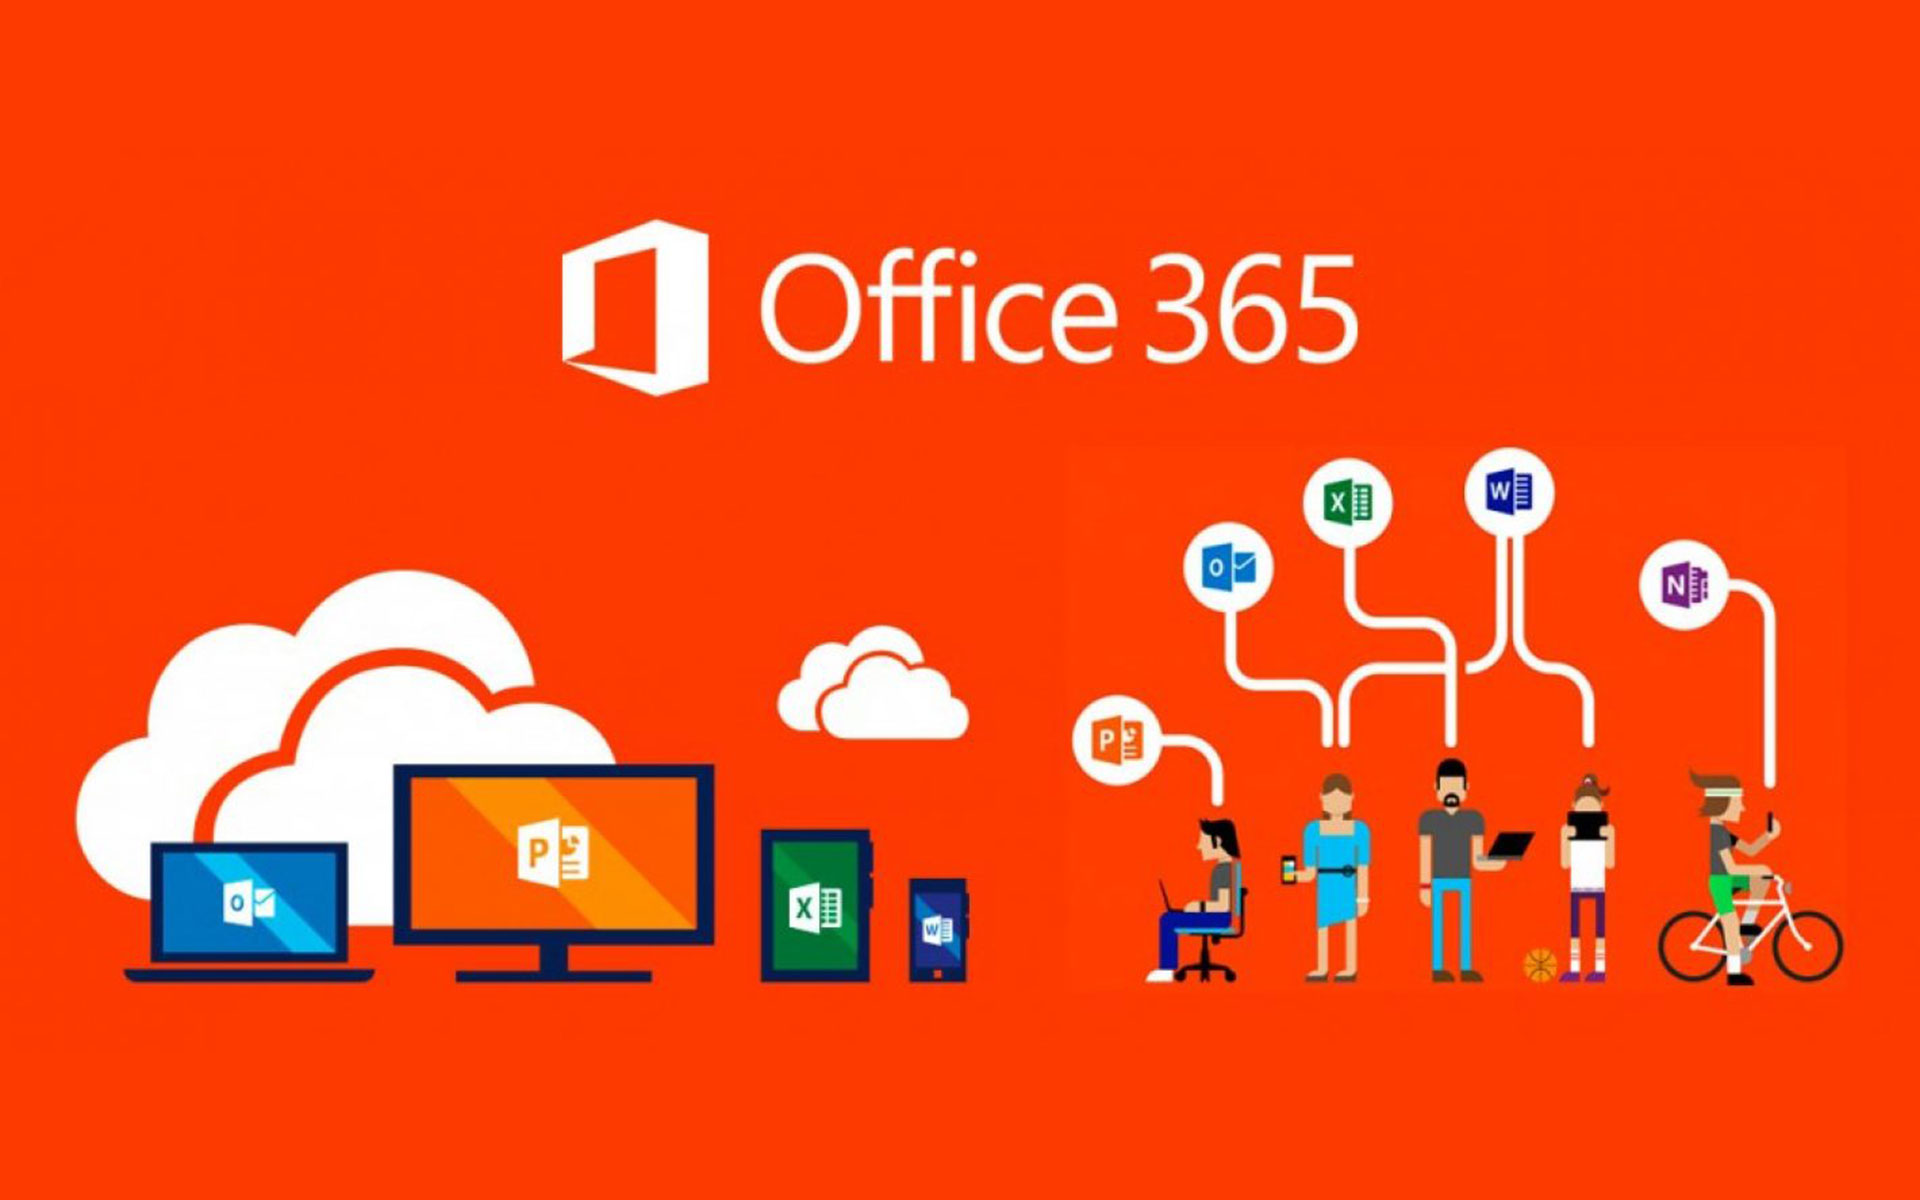 office365-page-2.jpg